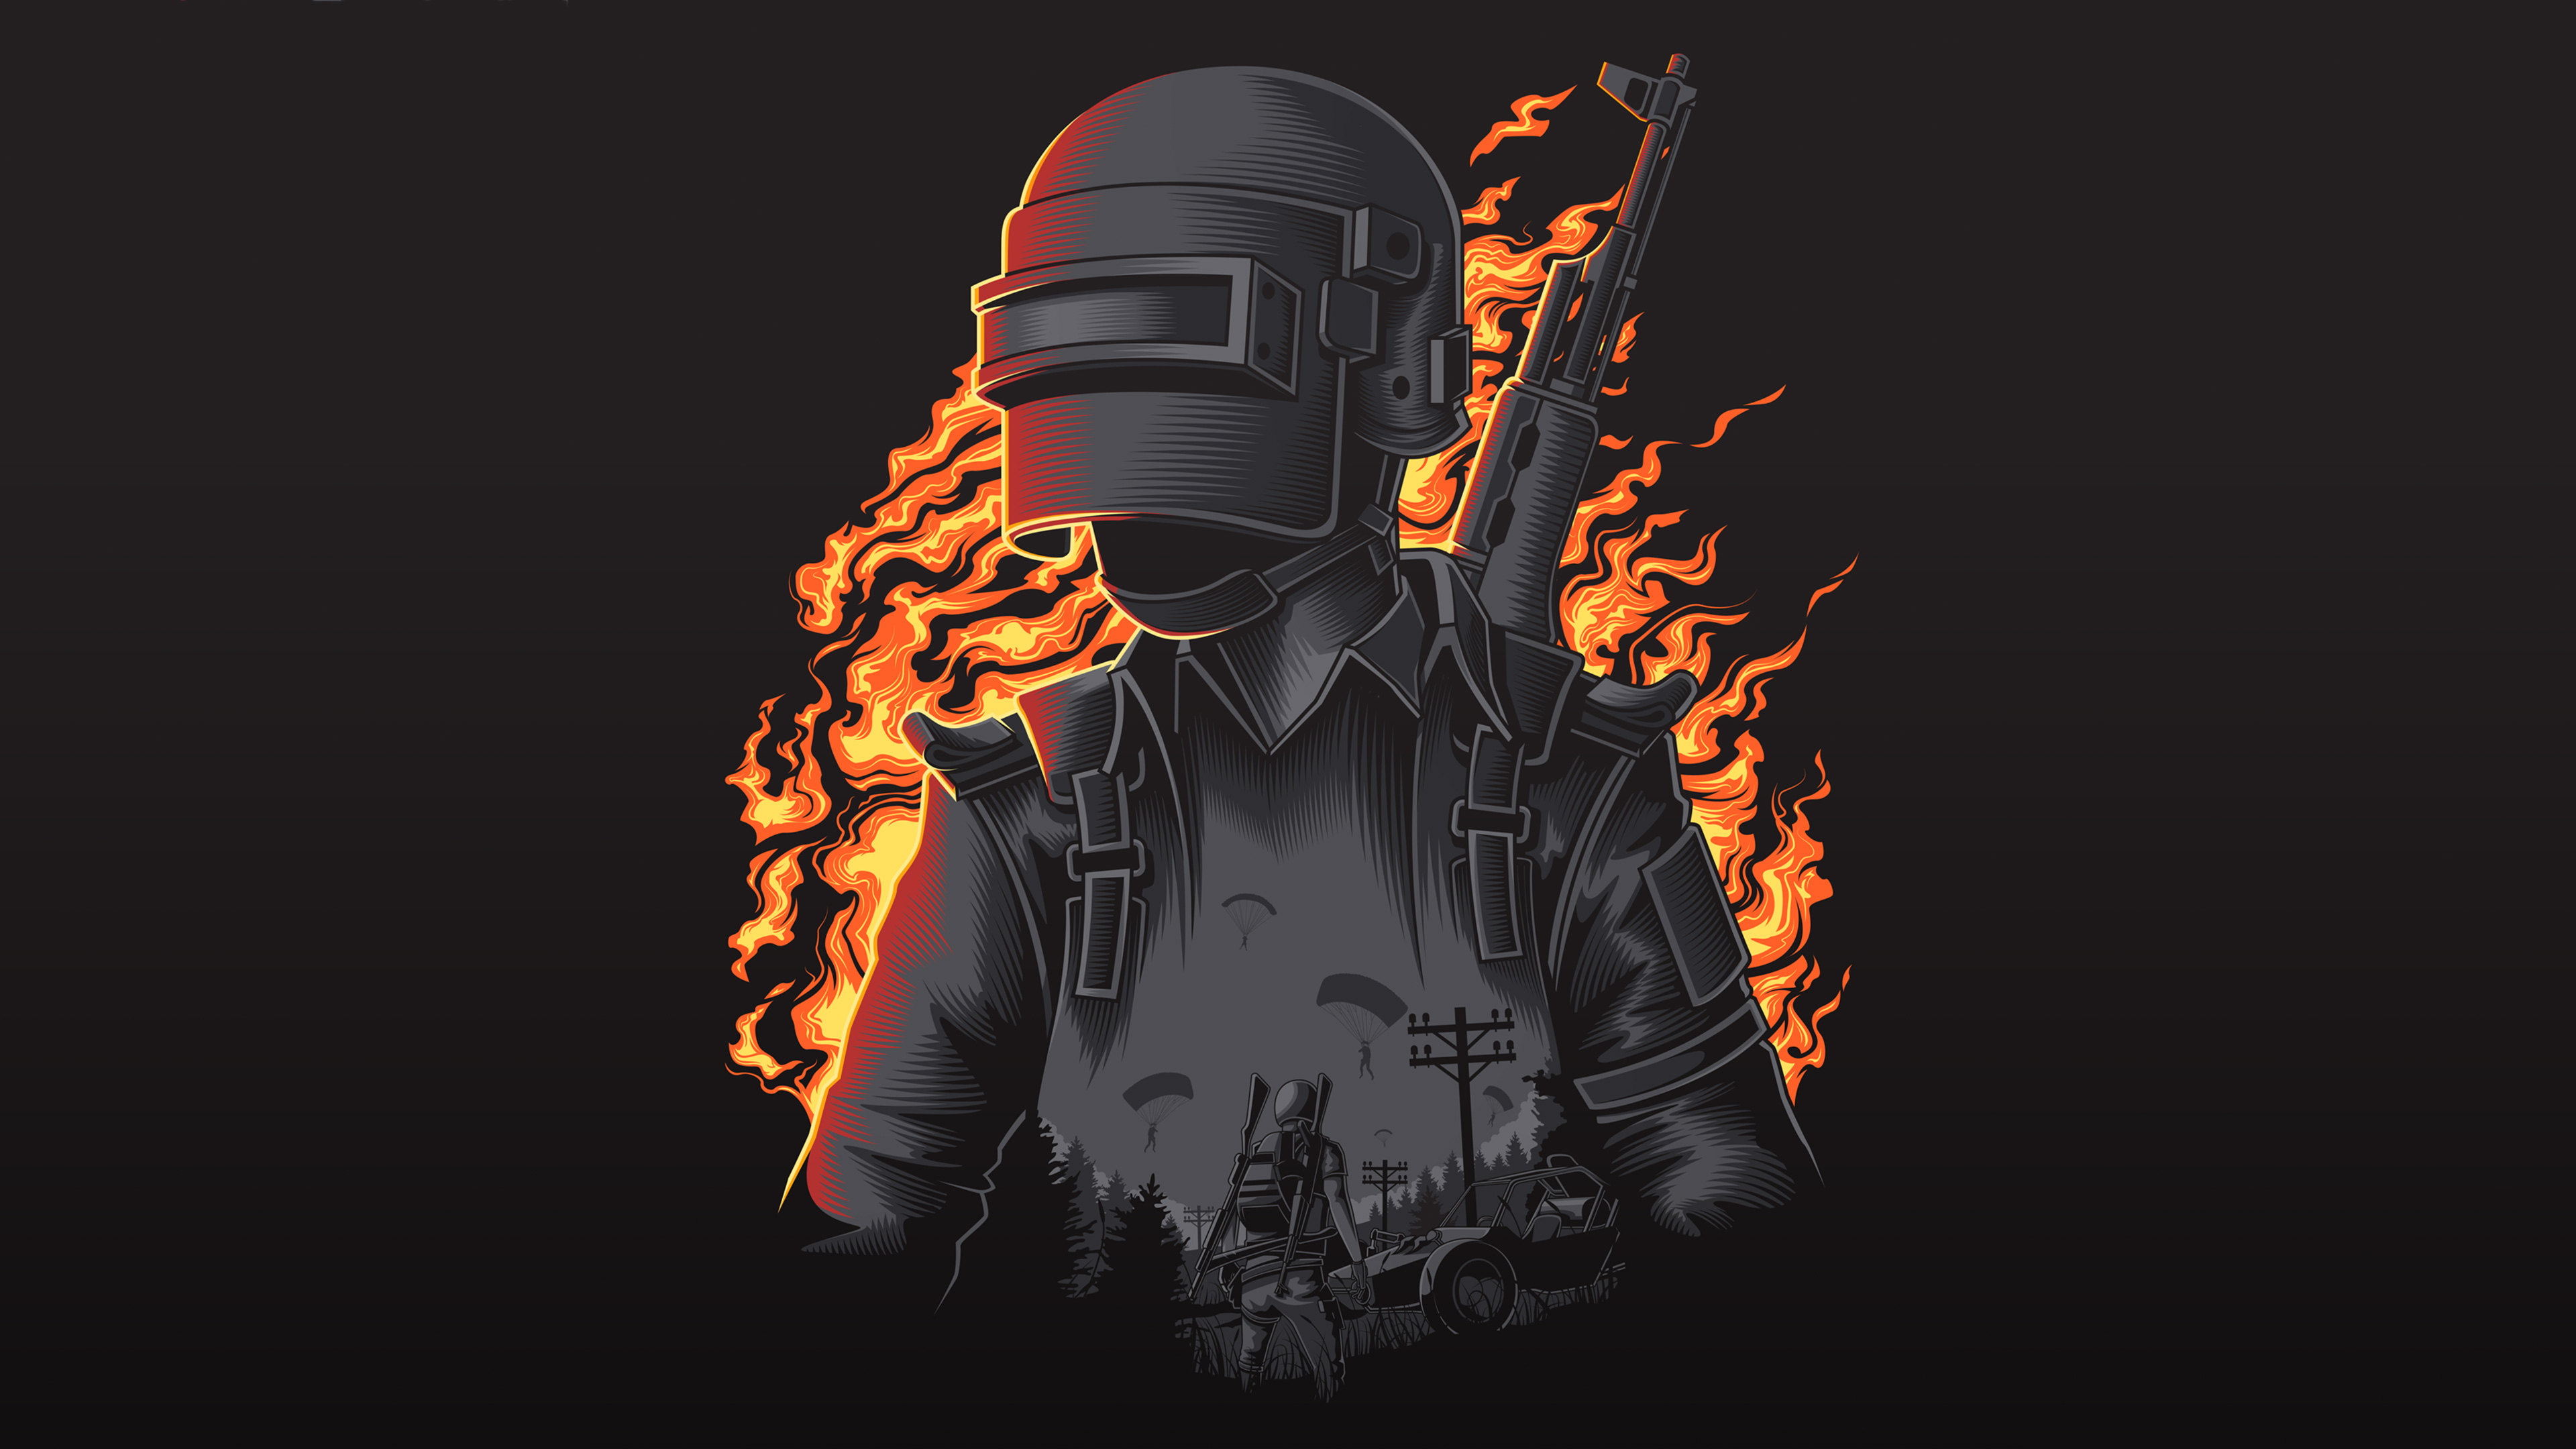 Pubg Minimalist Pophead Full Hd Wallpaper: Pubg Illustration 4k, HD Games, 4k Wallpapers, Images